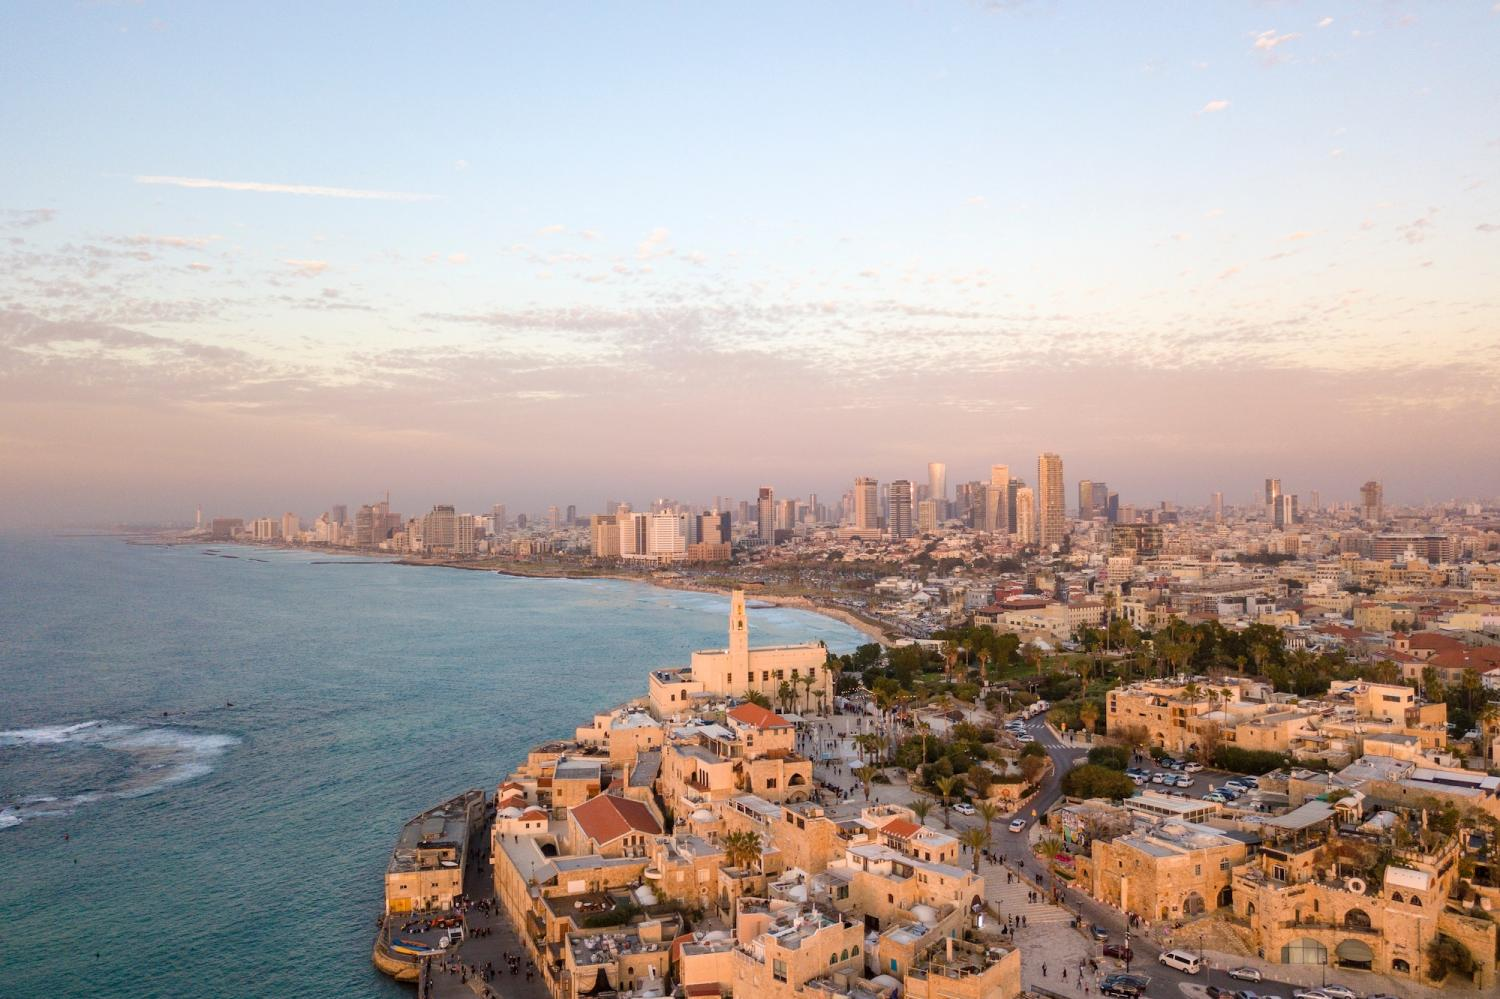 Tel Aviv, Israel - lessons on inclusive growth